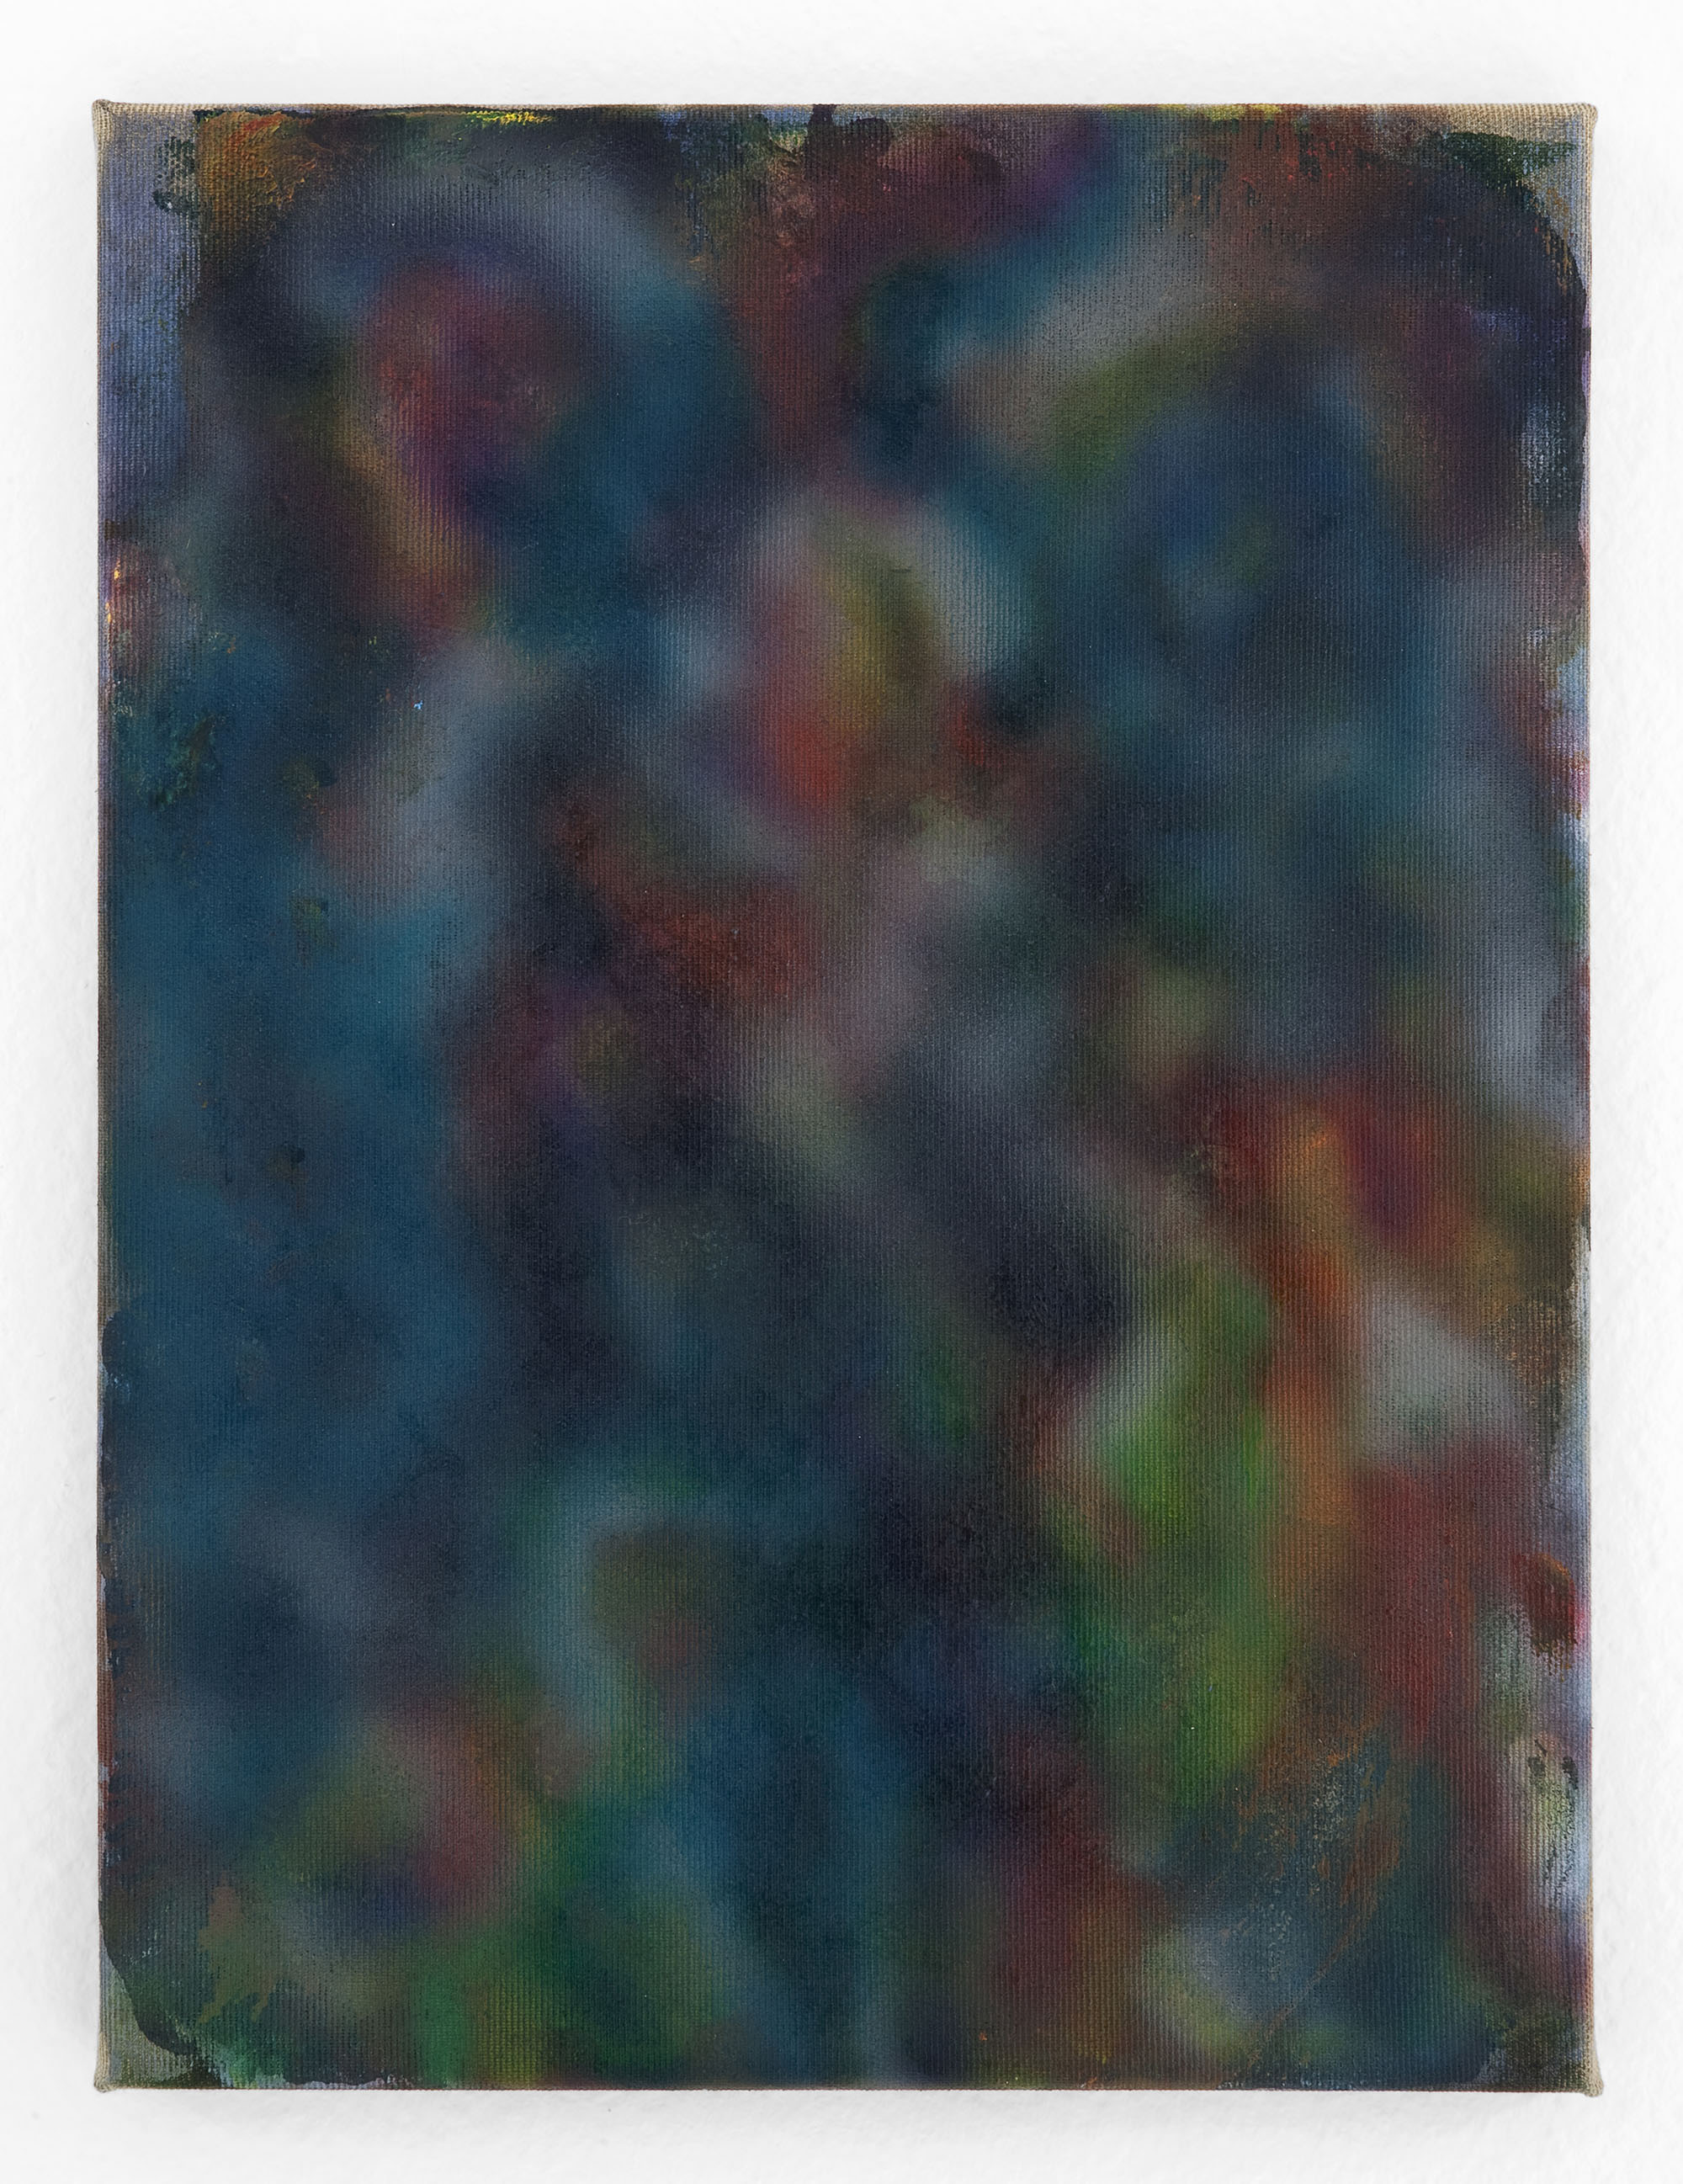 12 - Tyra Tingleff Untitled 2014 oil on canvas 40x30 cm - Courtesy Artist and Studiolo Milan - photo Filippo Armellin